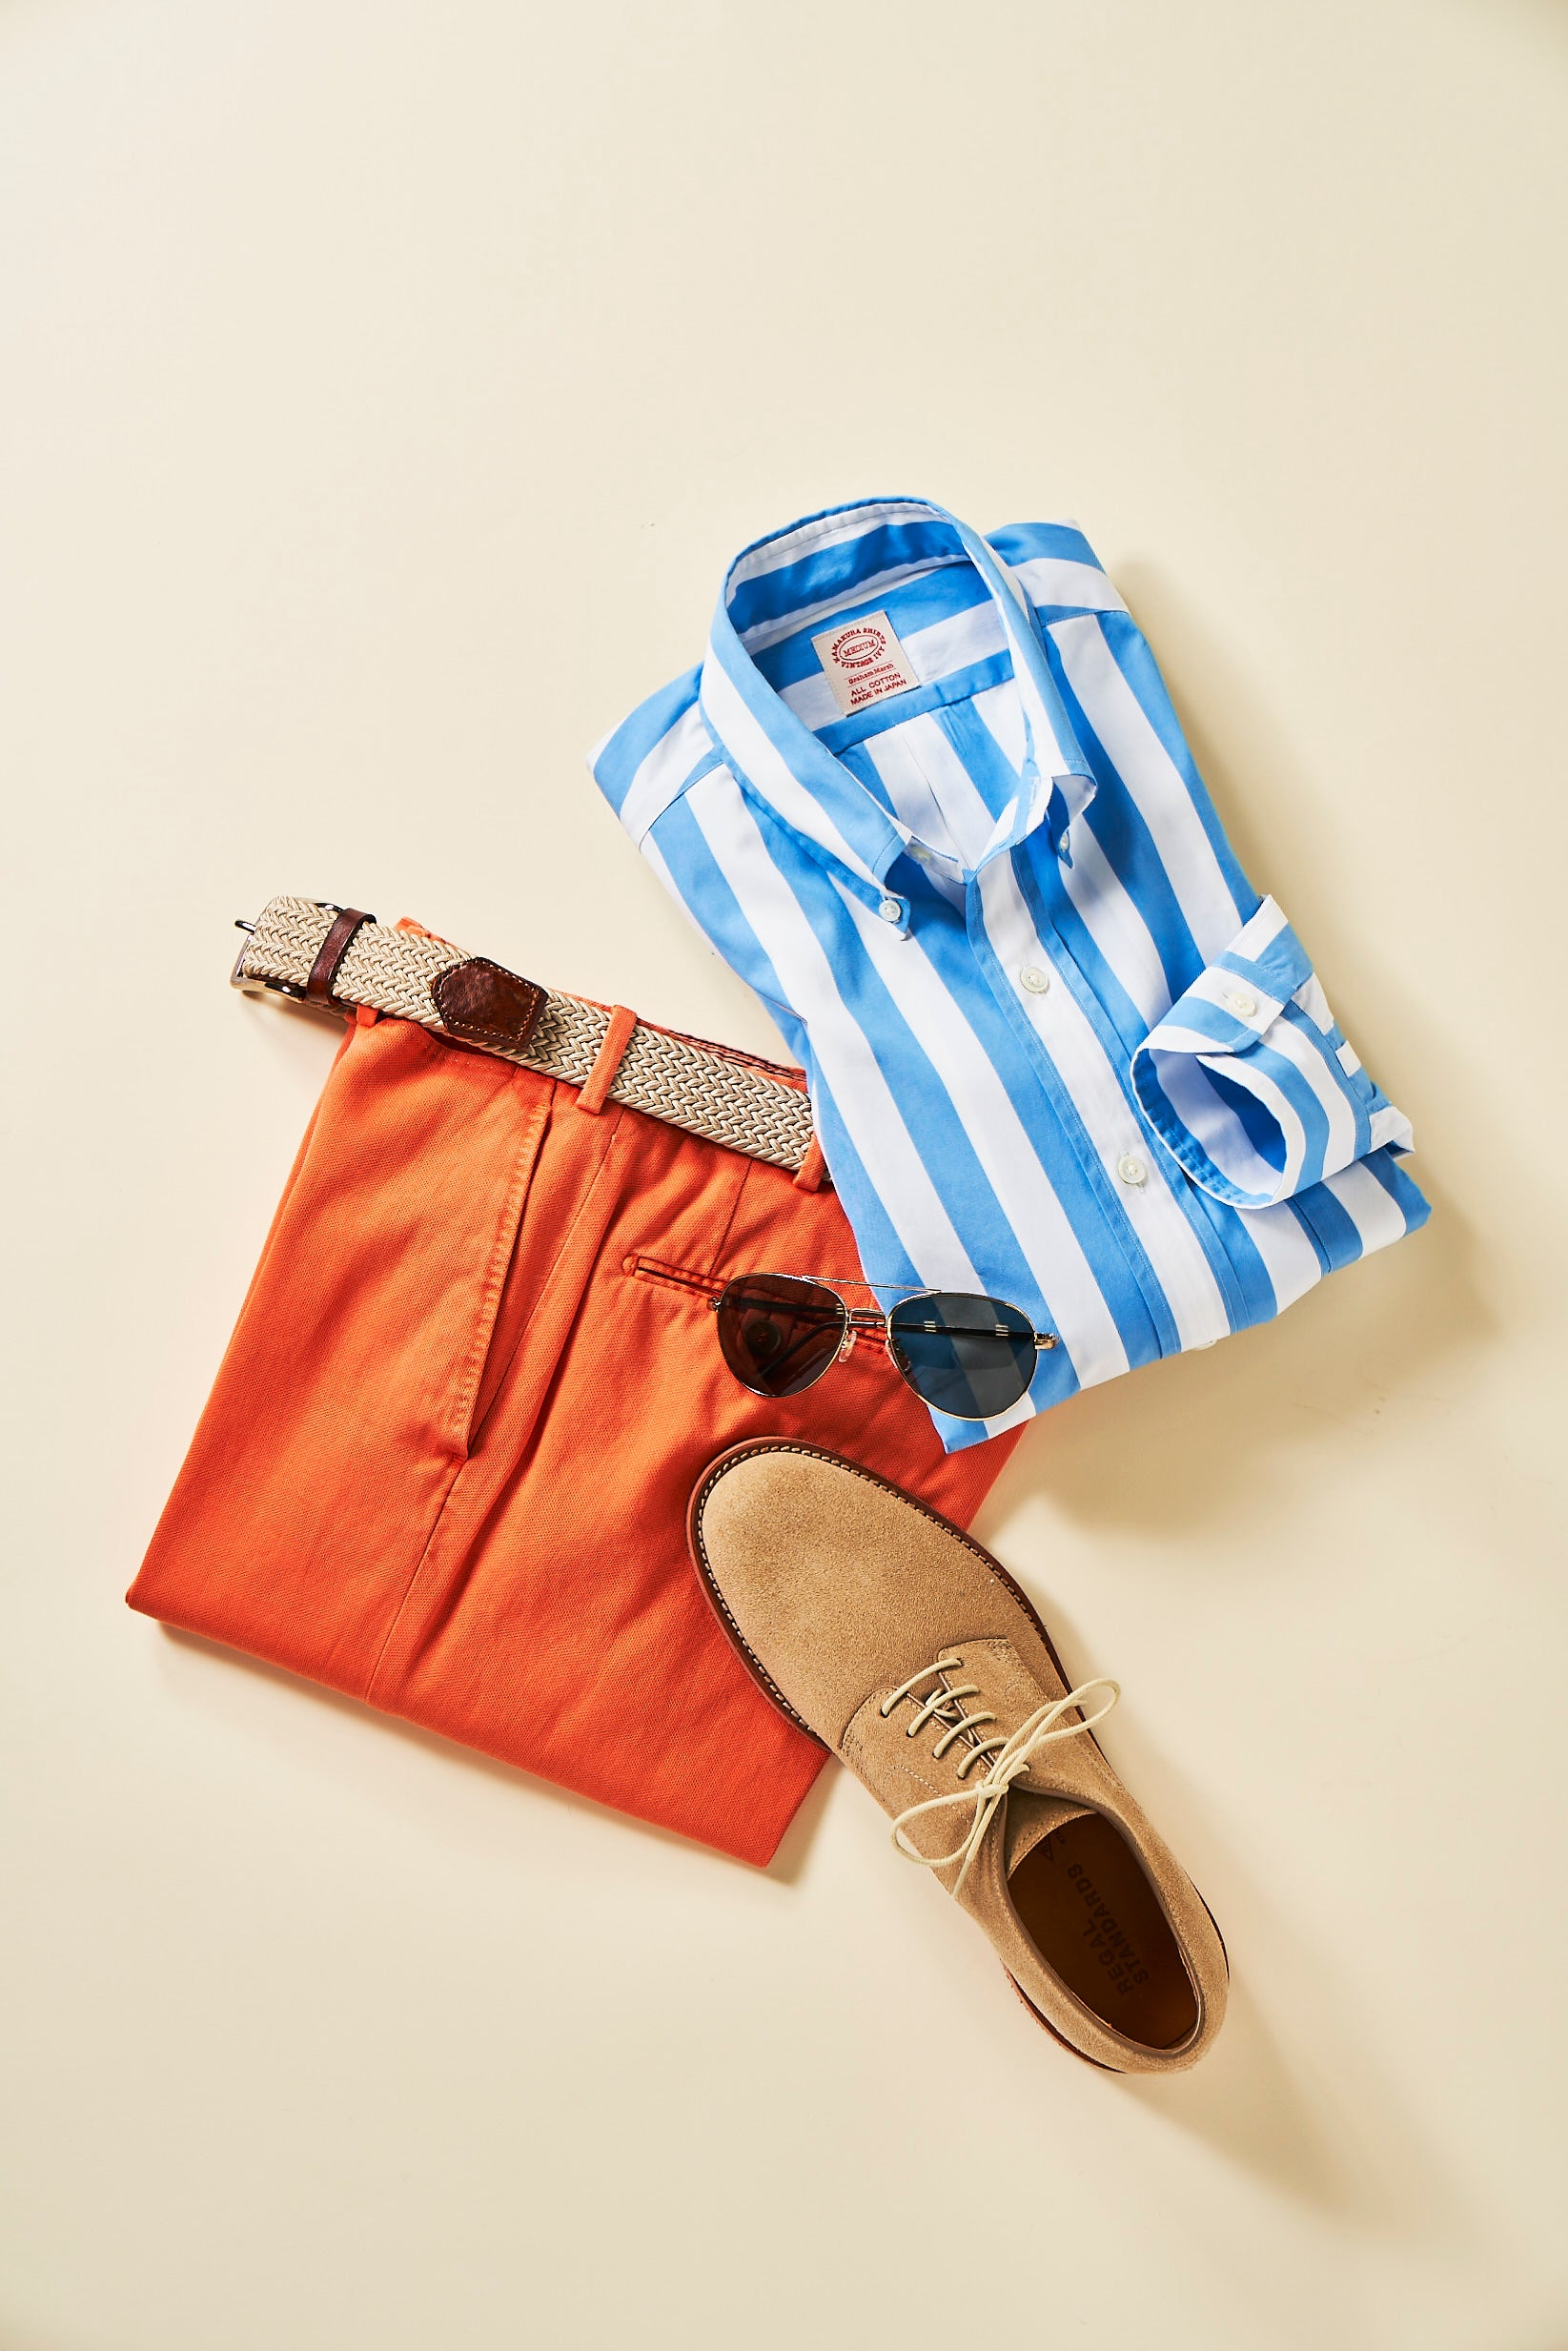 A striped blue and white broadcloth shirt folded with orange trousers, shoes, and sunglasses